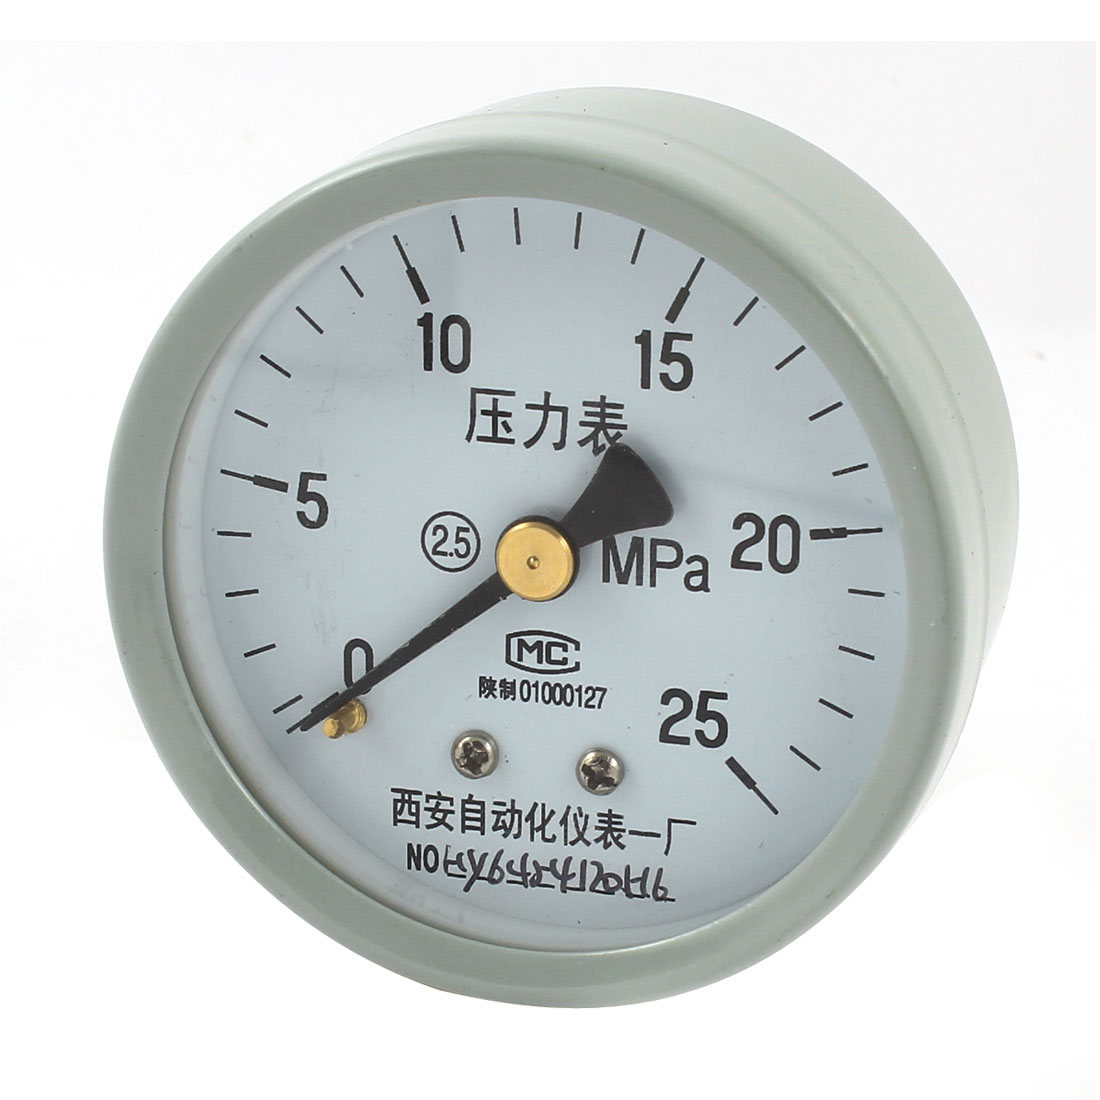 1/4PT Threaded 0-25Mpa Arabic Number Display Air Pressure Measuring Gauge Light Gray